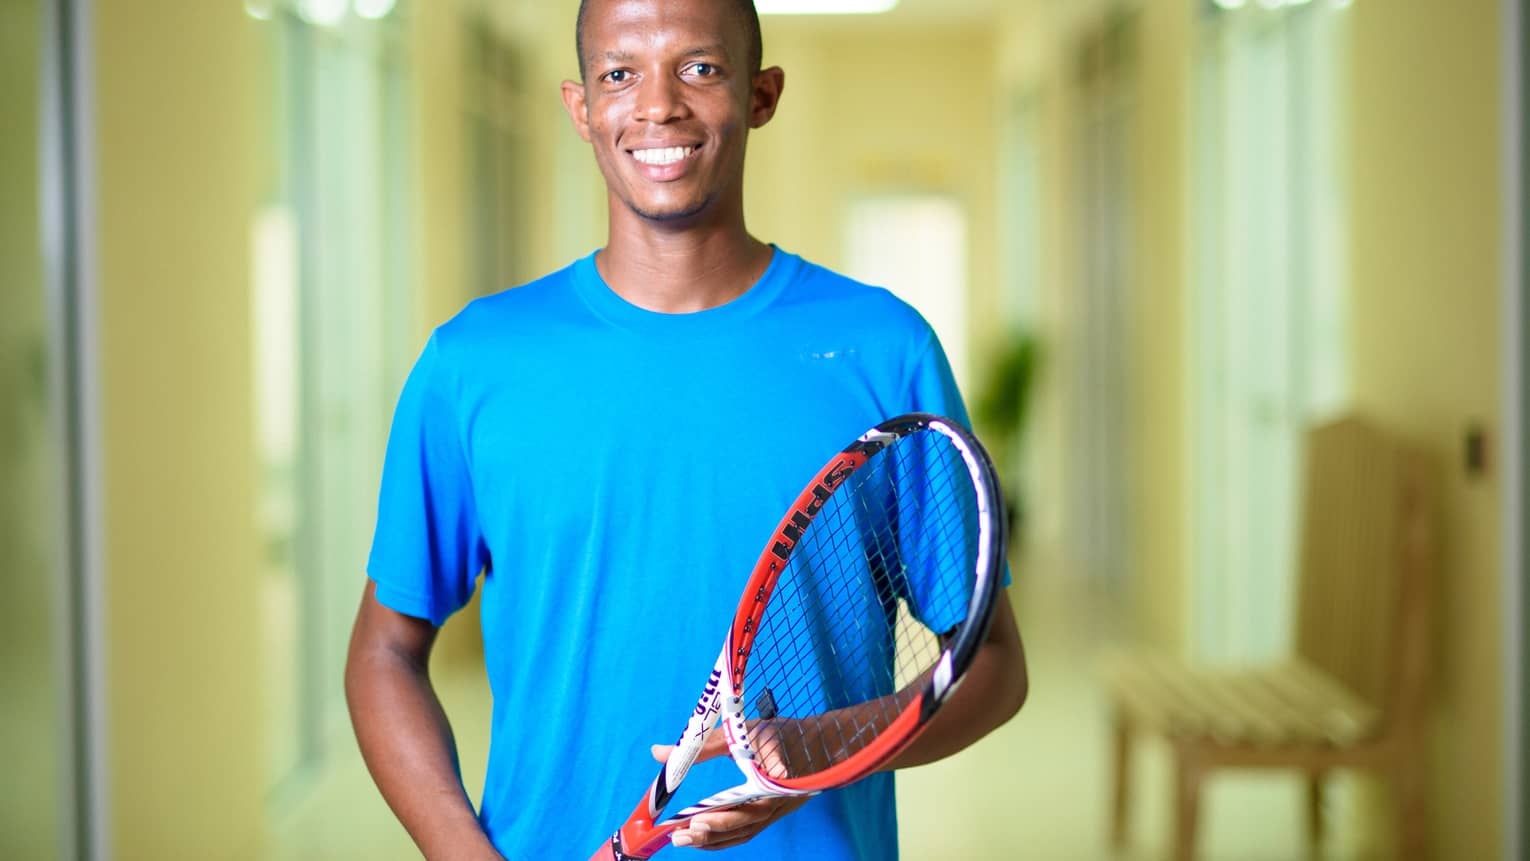 Smiling man in blue shirt holds red tennis racket